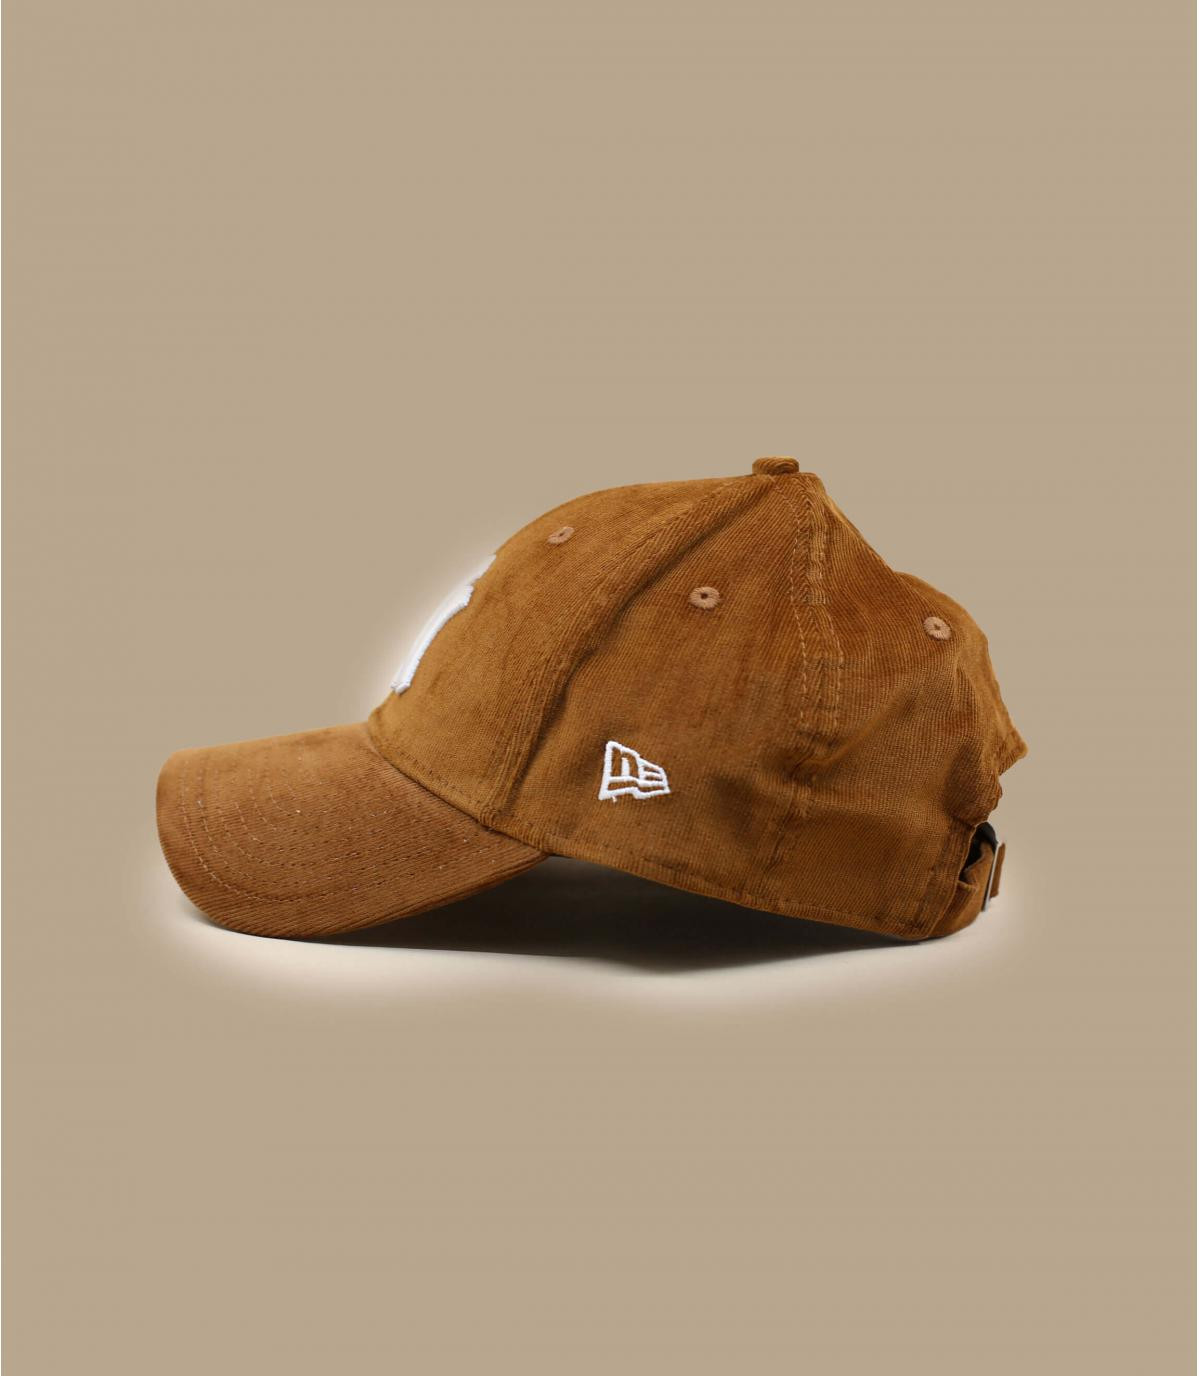 Détails Casquette Wmn Cord NY 940 toffee - image 3